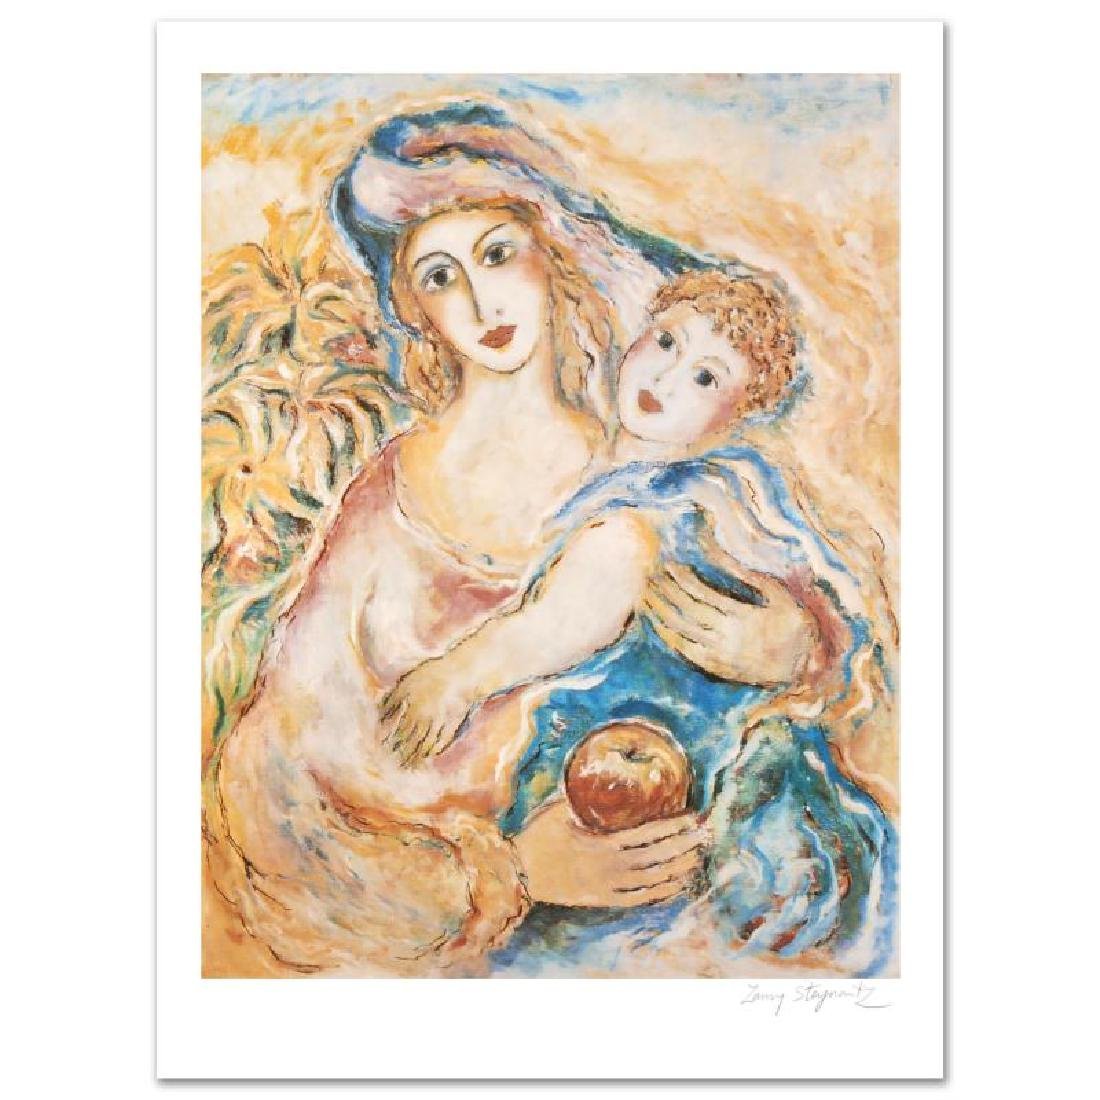 "Steynovitz (1951-2000) ""Mother's Love"" Lithograph"